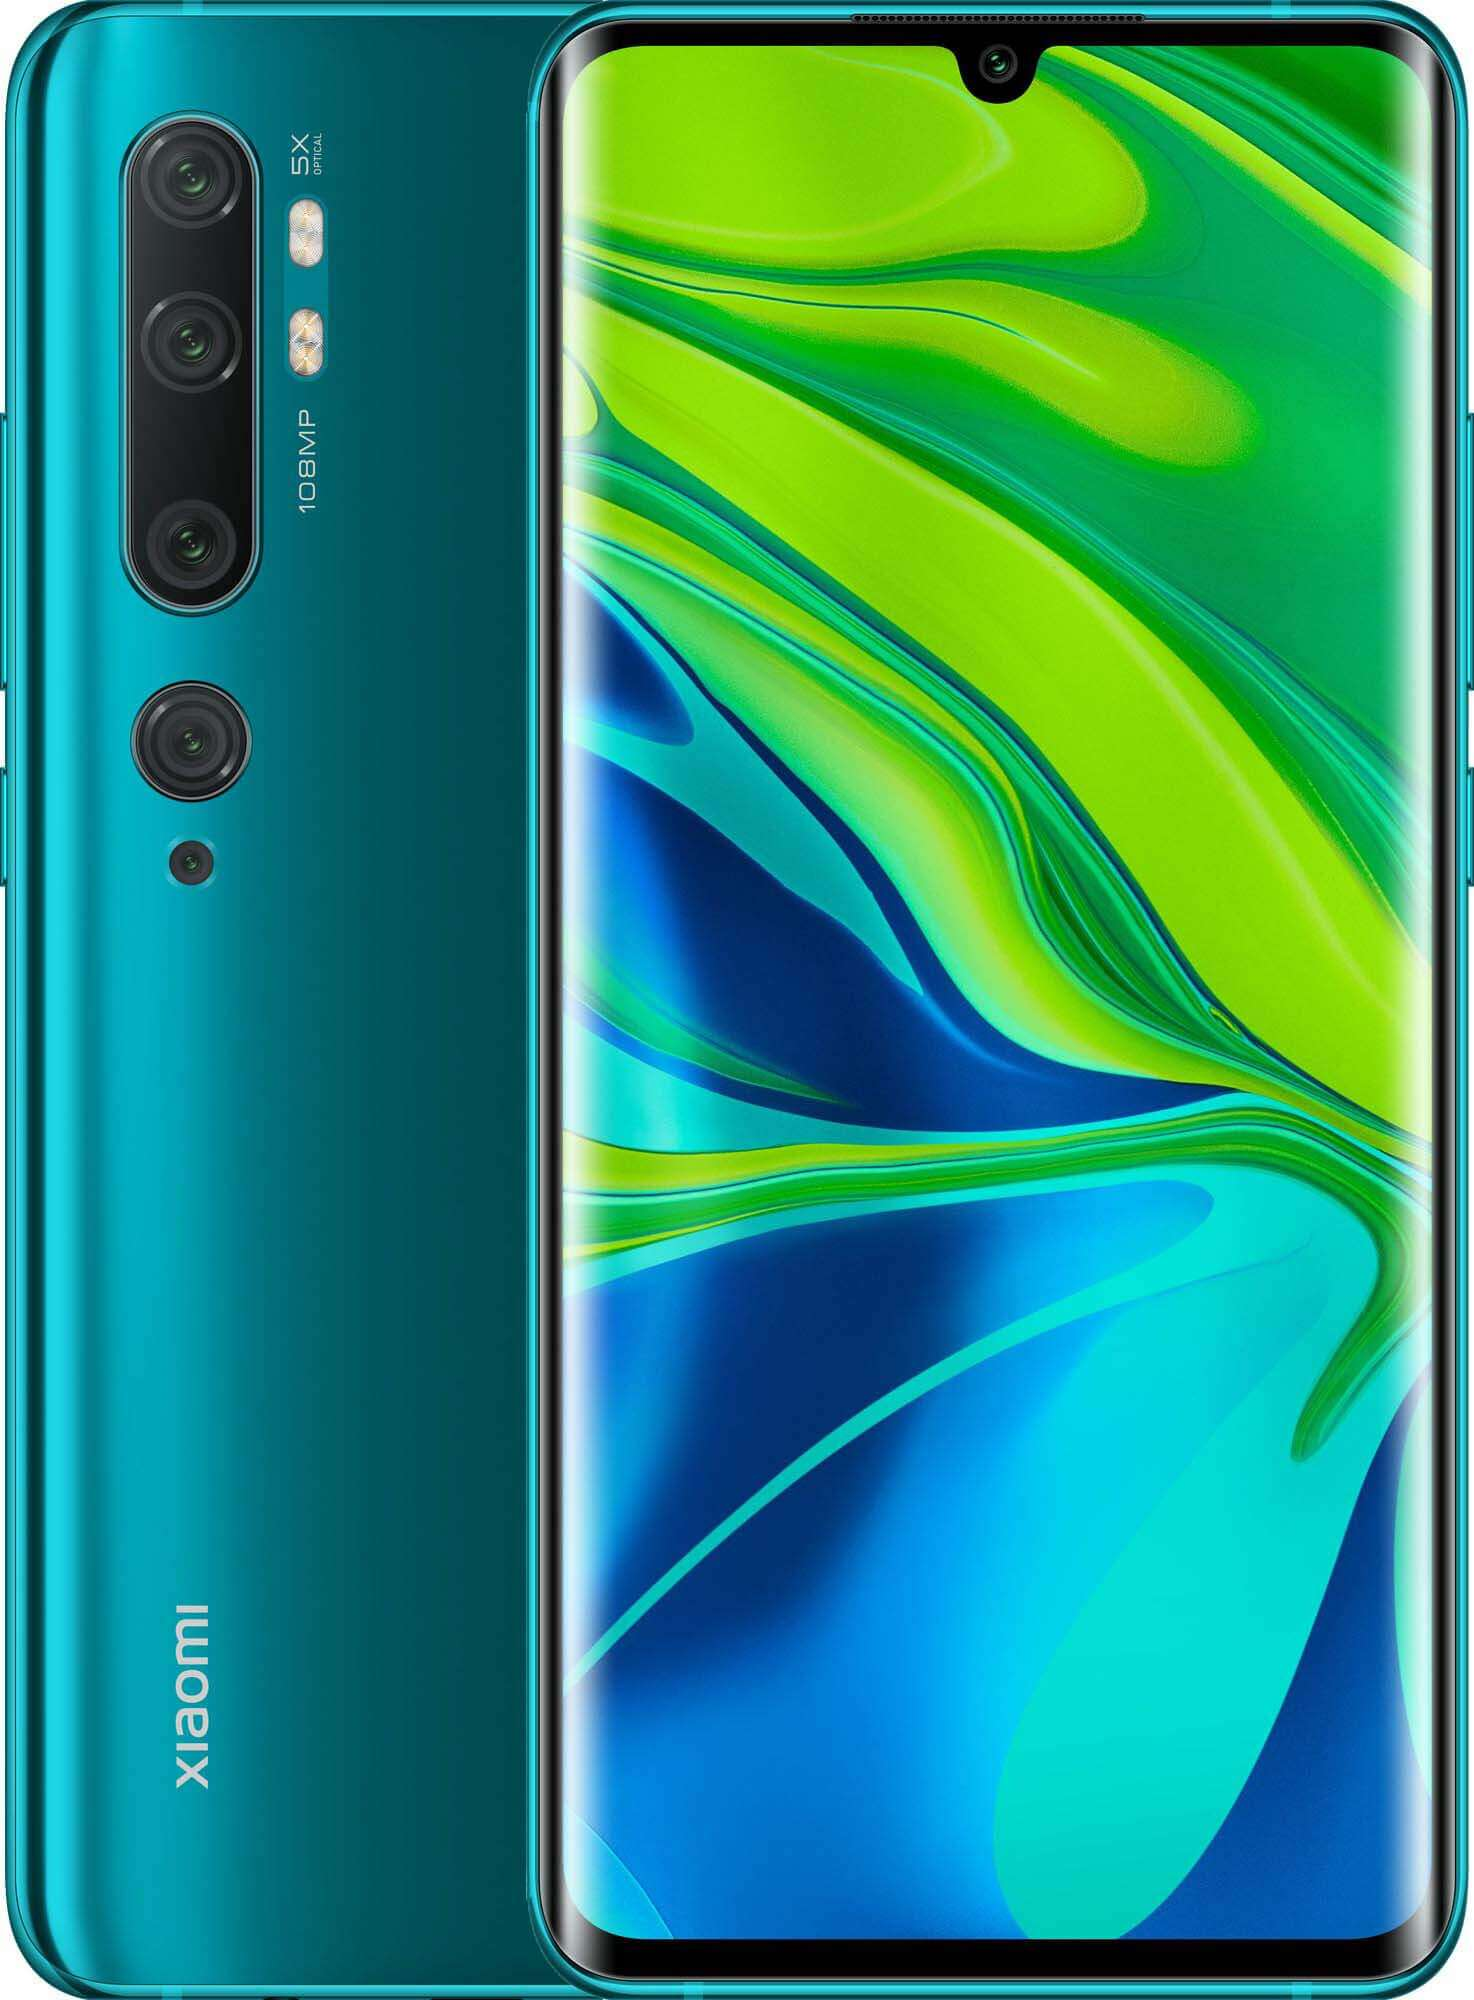 Xiaomi Mi Note 10 Pro Dual SIM - 256GB, 8GB RAM, 4G LTE, Global Version - Aurora Green